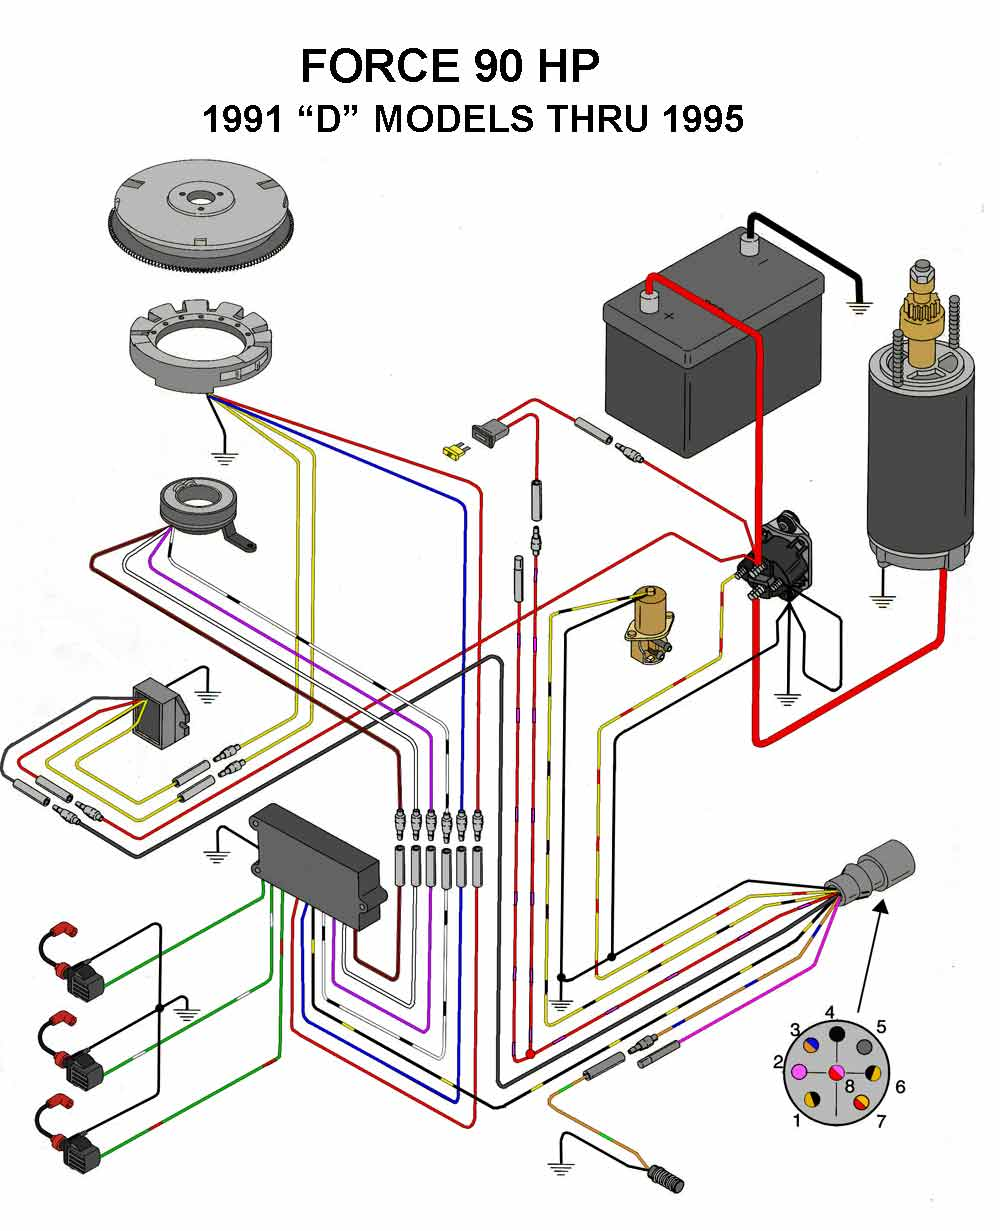 Mercury Outboard Wiring Schematic Diagram Guide And Motor 90 Hp Simple Diagrams Rh 22 Studio011 De 1988 1997